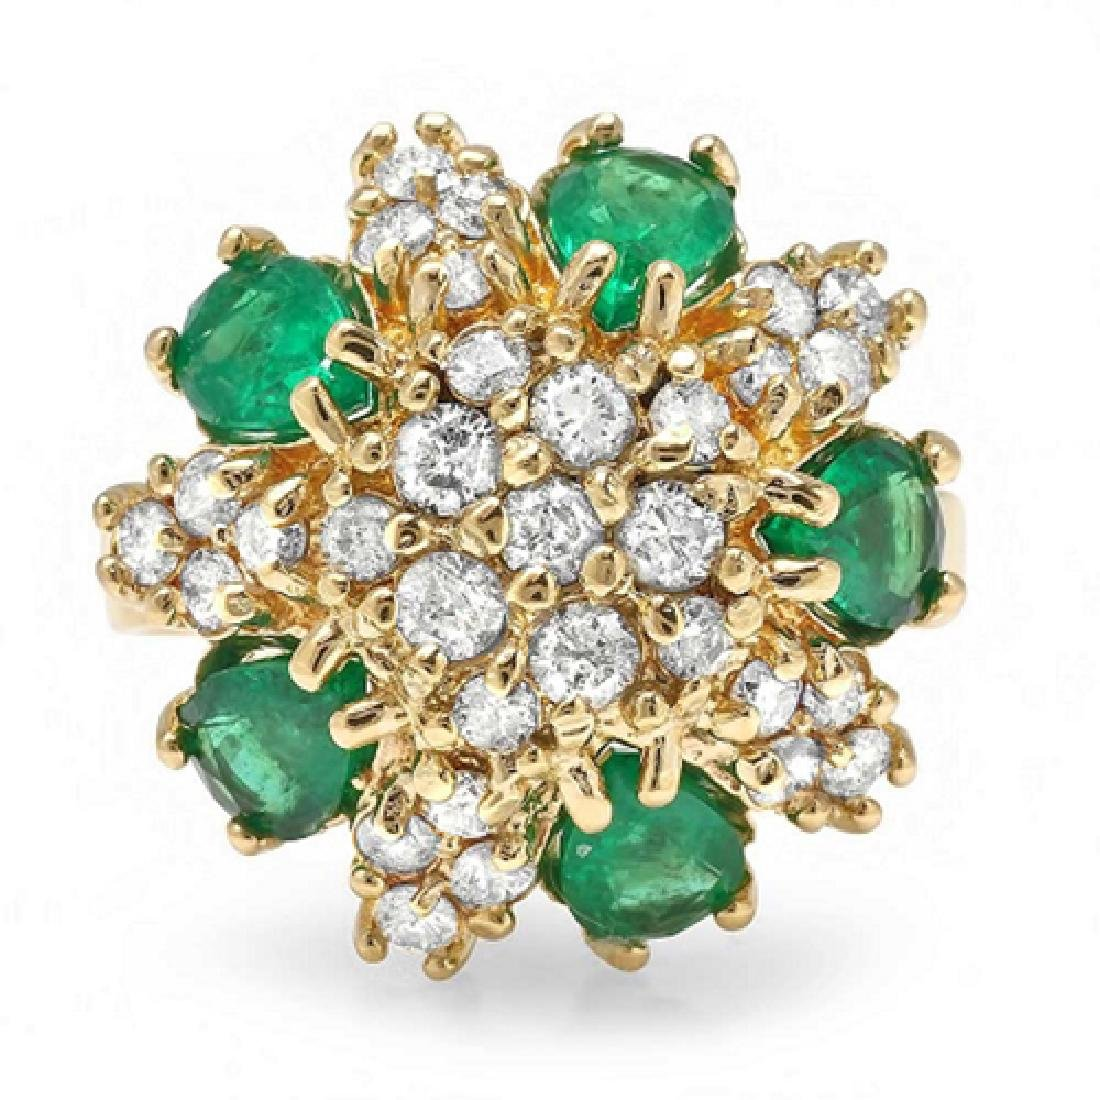 3.50 Carat Natural Emerald 18K Solid Yellow Gold